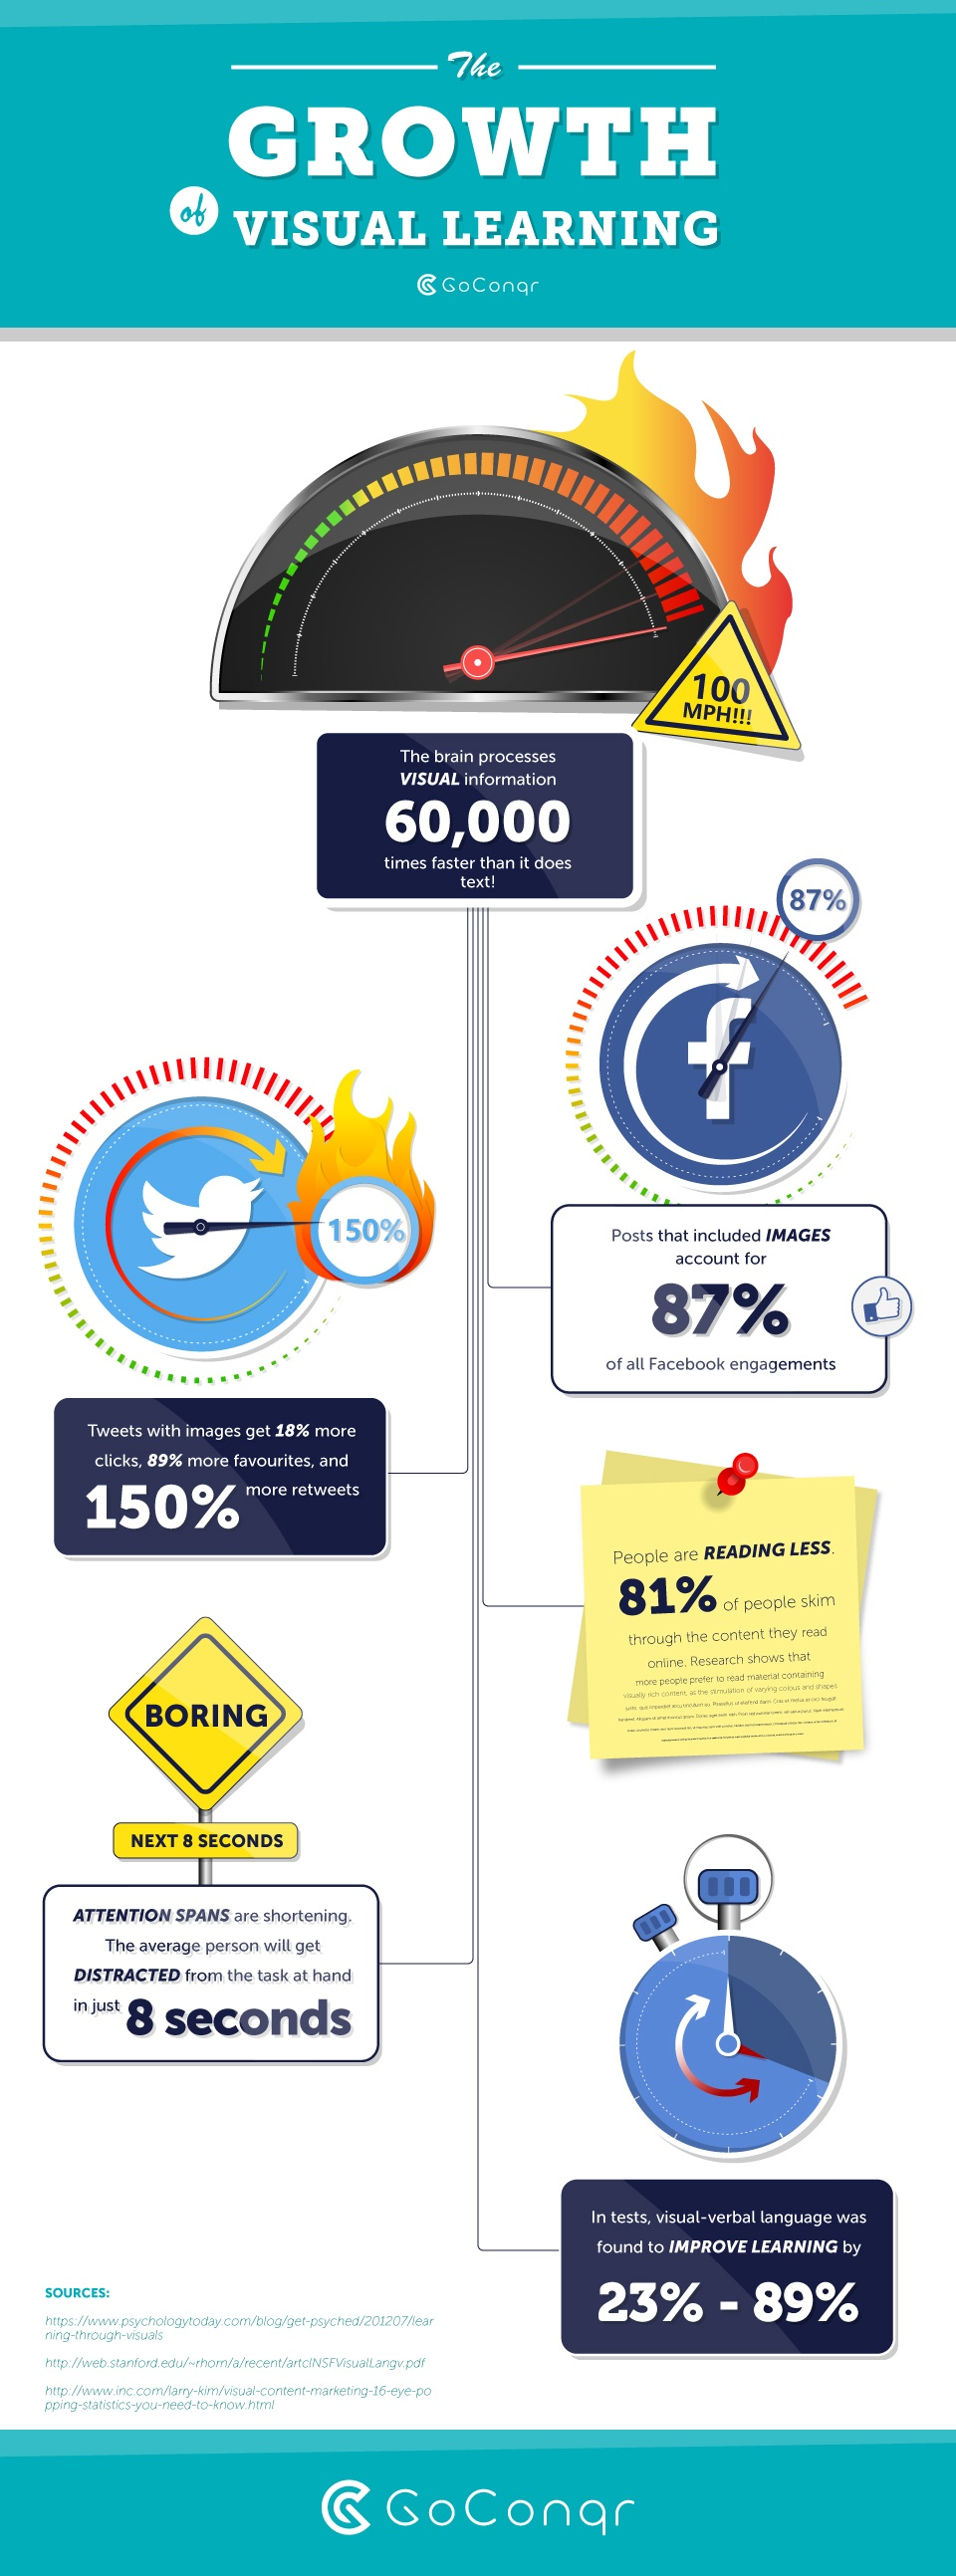 The Growth of Visual Learning Infographic